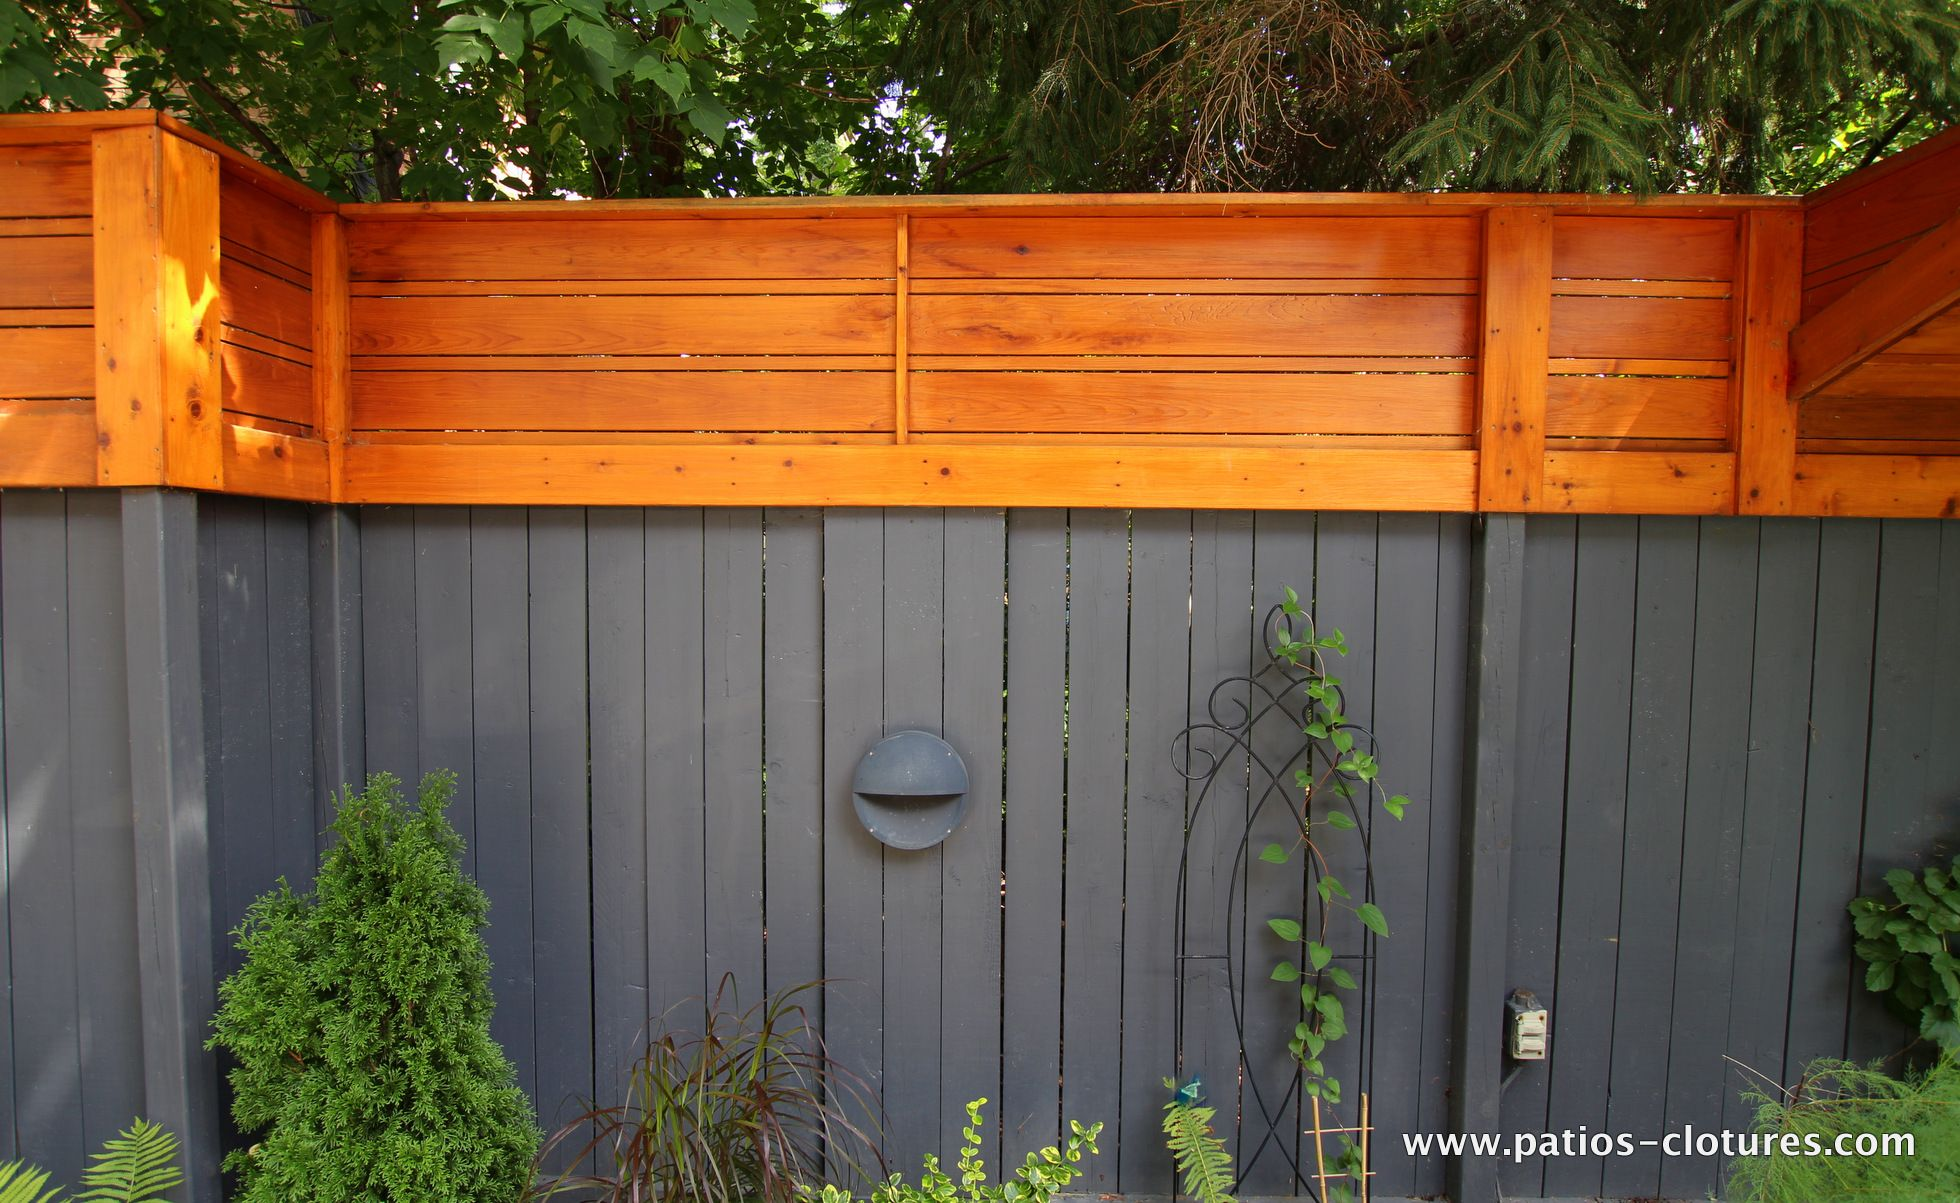 Vertical And Horizontal Fence Stained Dark Gray In The Lower Part And Cedar Color In The Upper Portion Horizontal Fence Fence Stain Wood Fence